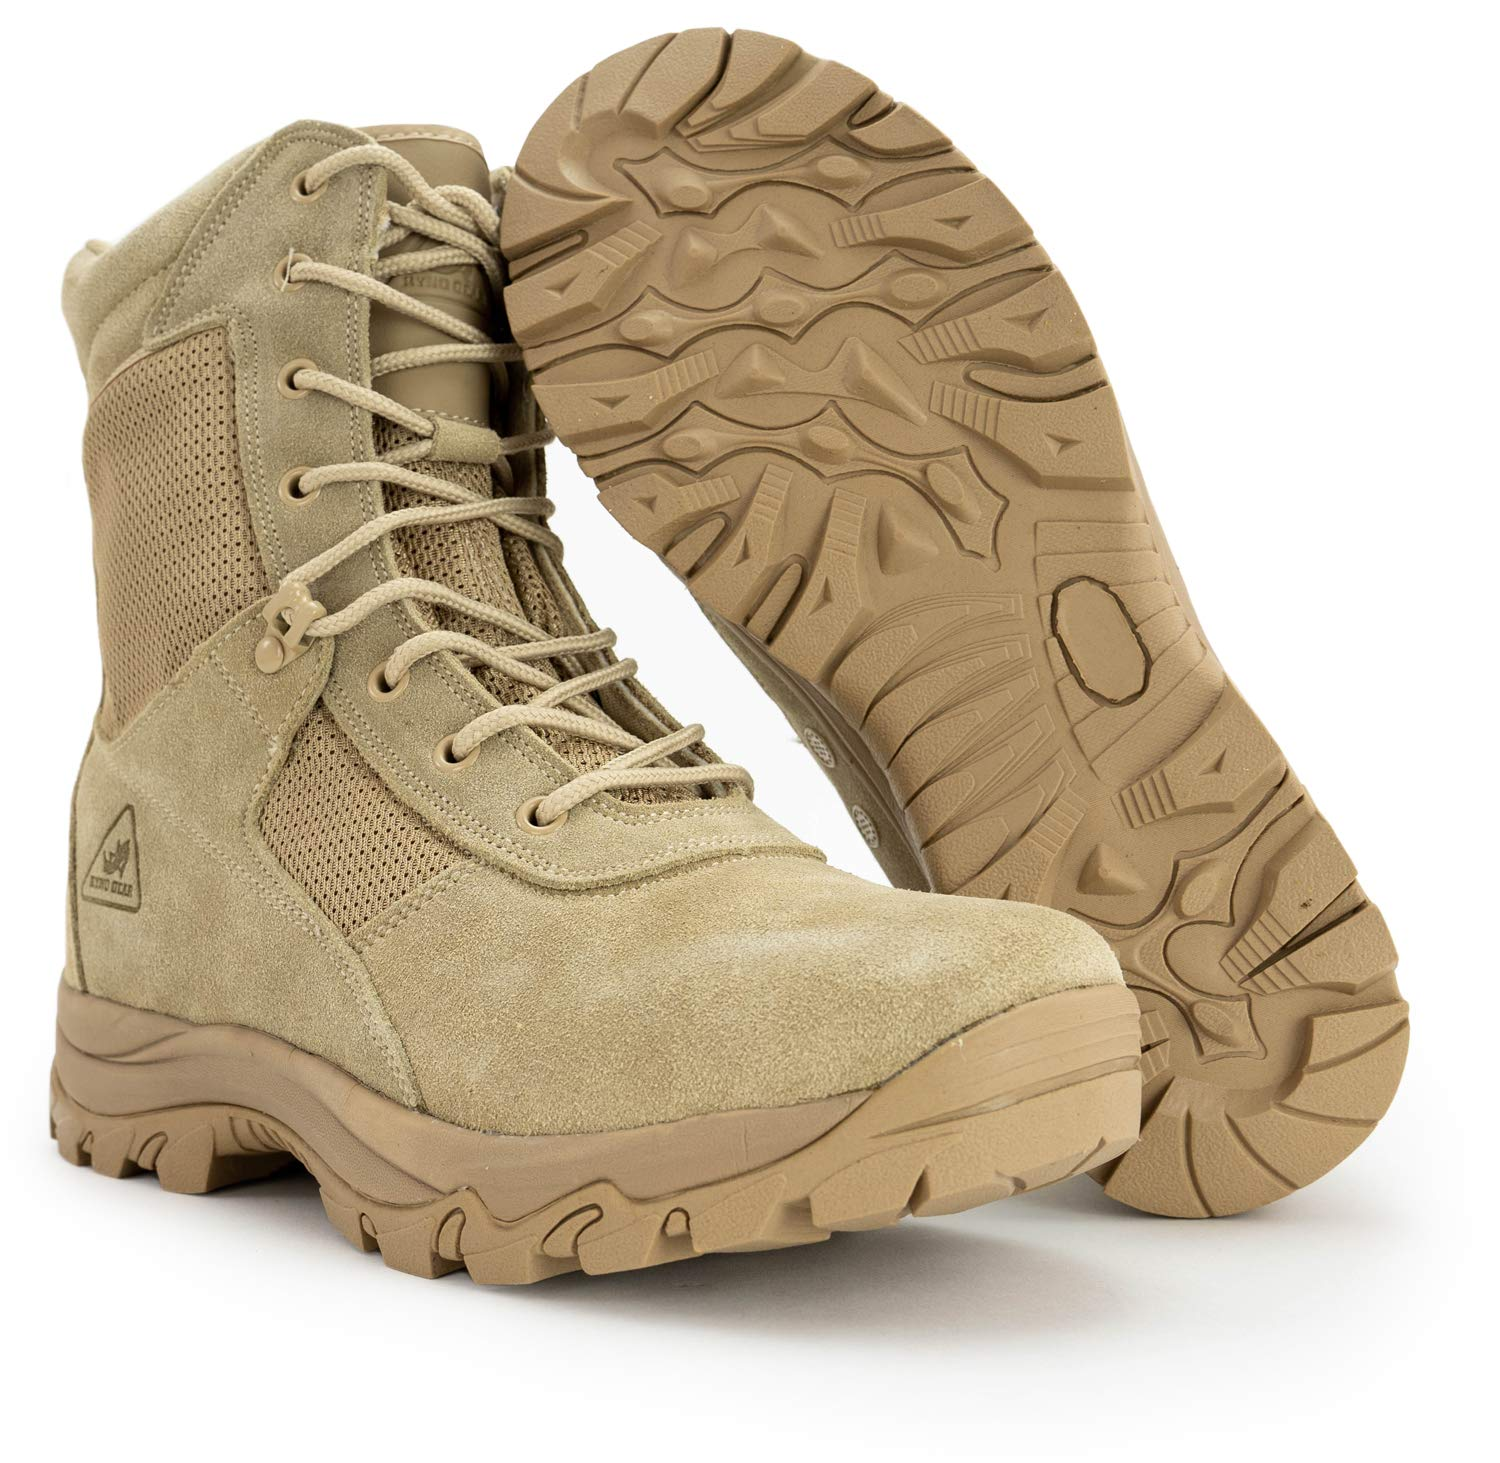 RYNO GEAR Tactical Combat Boots with Coolmax Lining (Beige) (8.00, 10.5) by RYNO GEAR